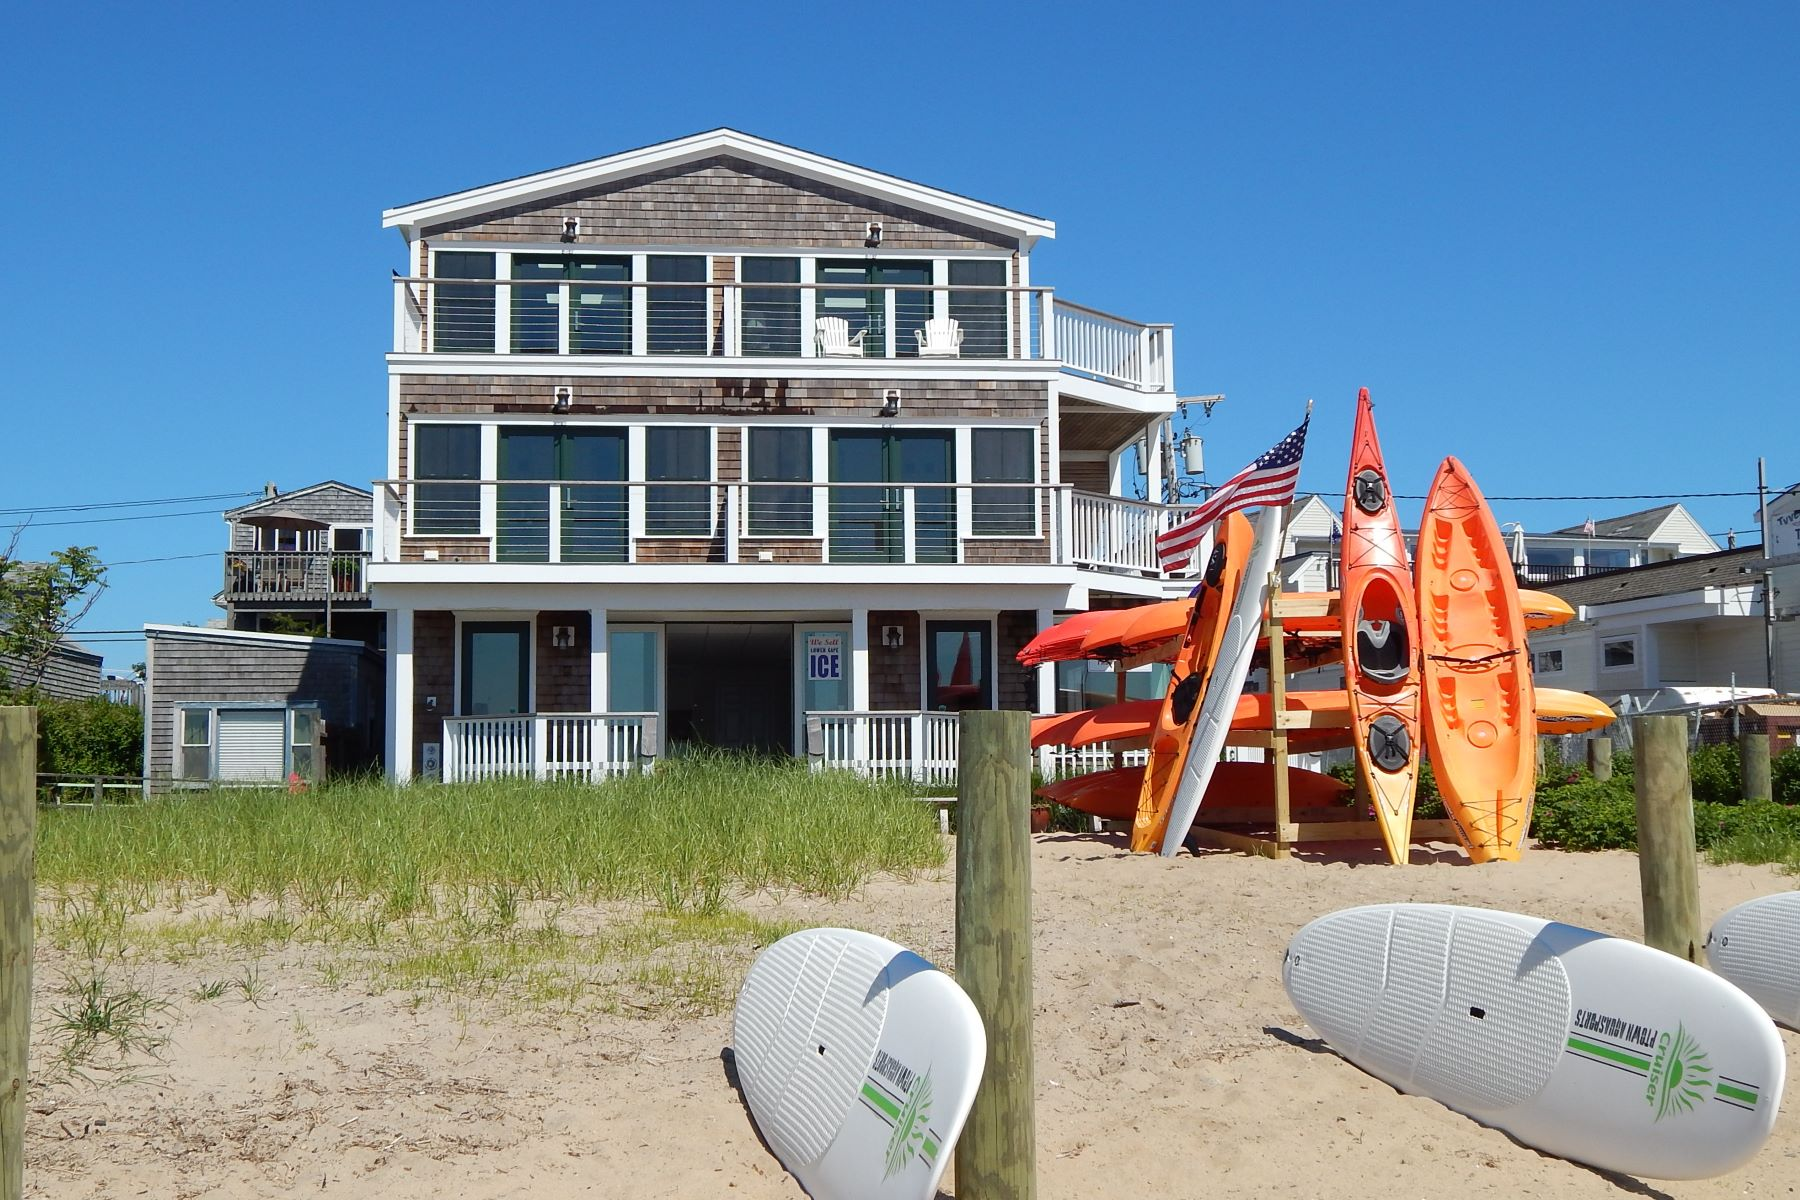 Condominium for Sale at Harborfront Landing with waterviews 333R Commercial Street, Unit 5, Provincetown, Massachusetts, 02657 United States